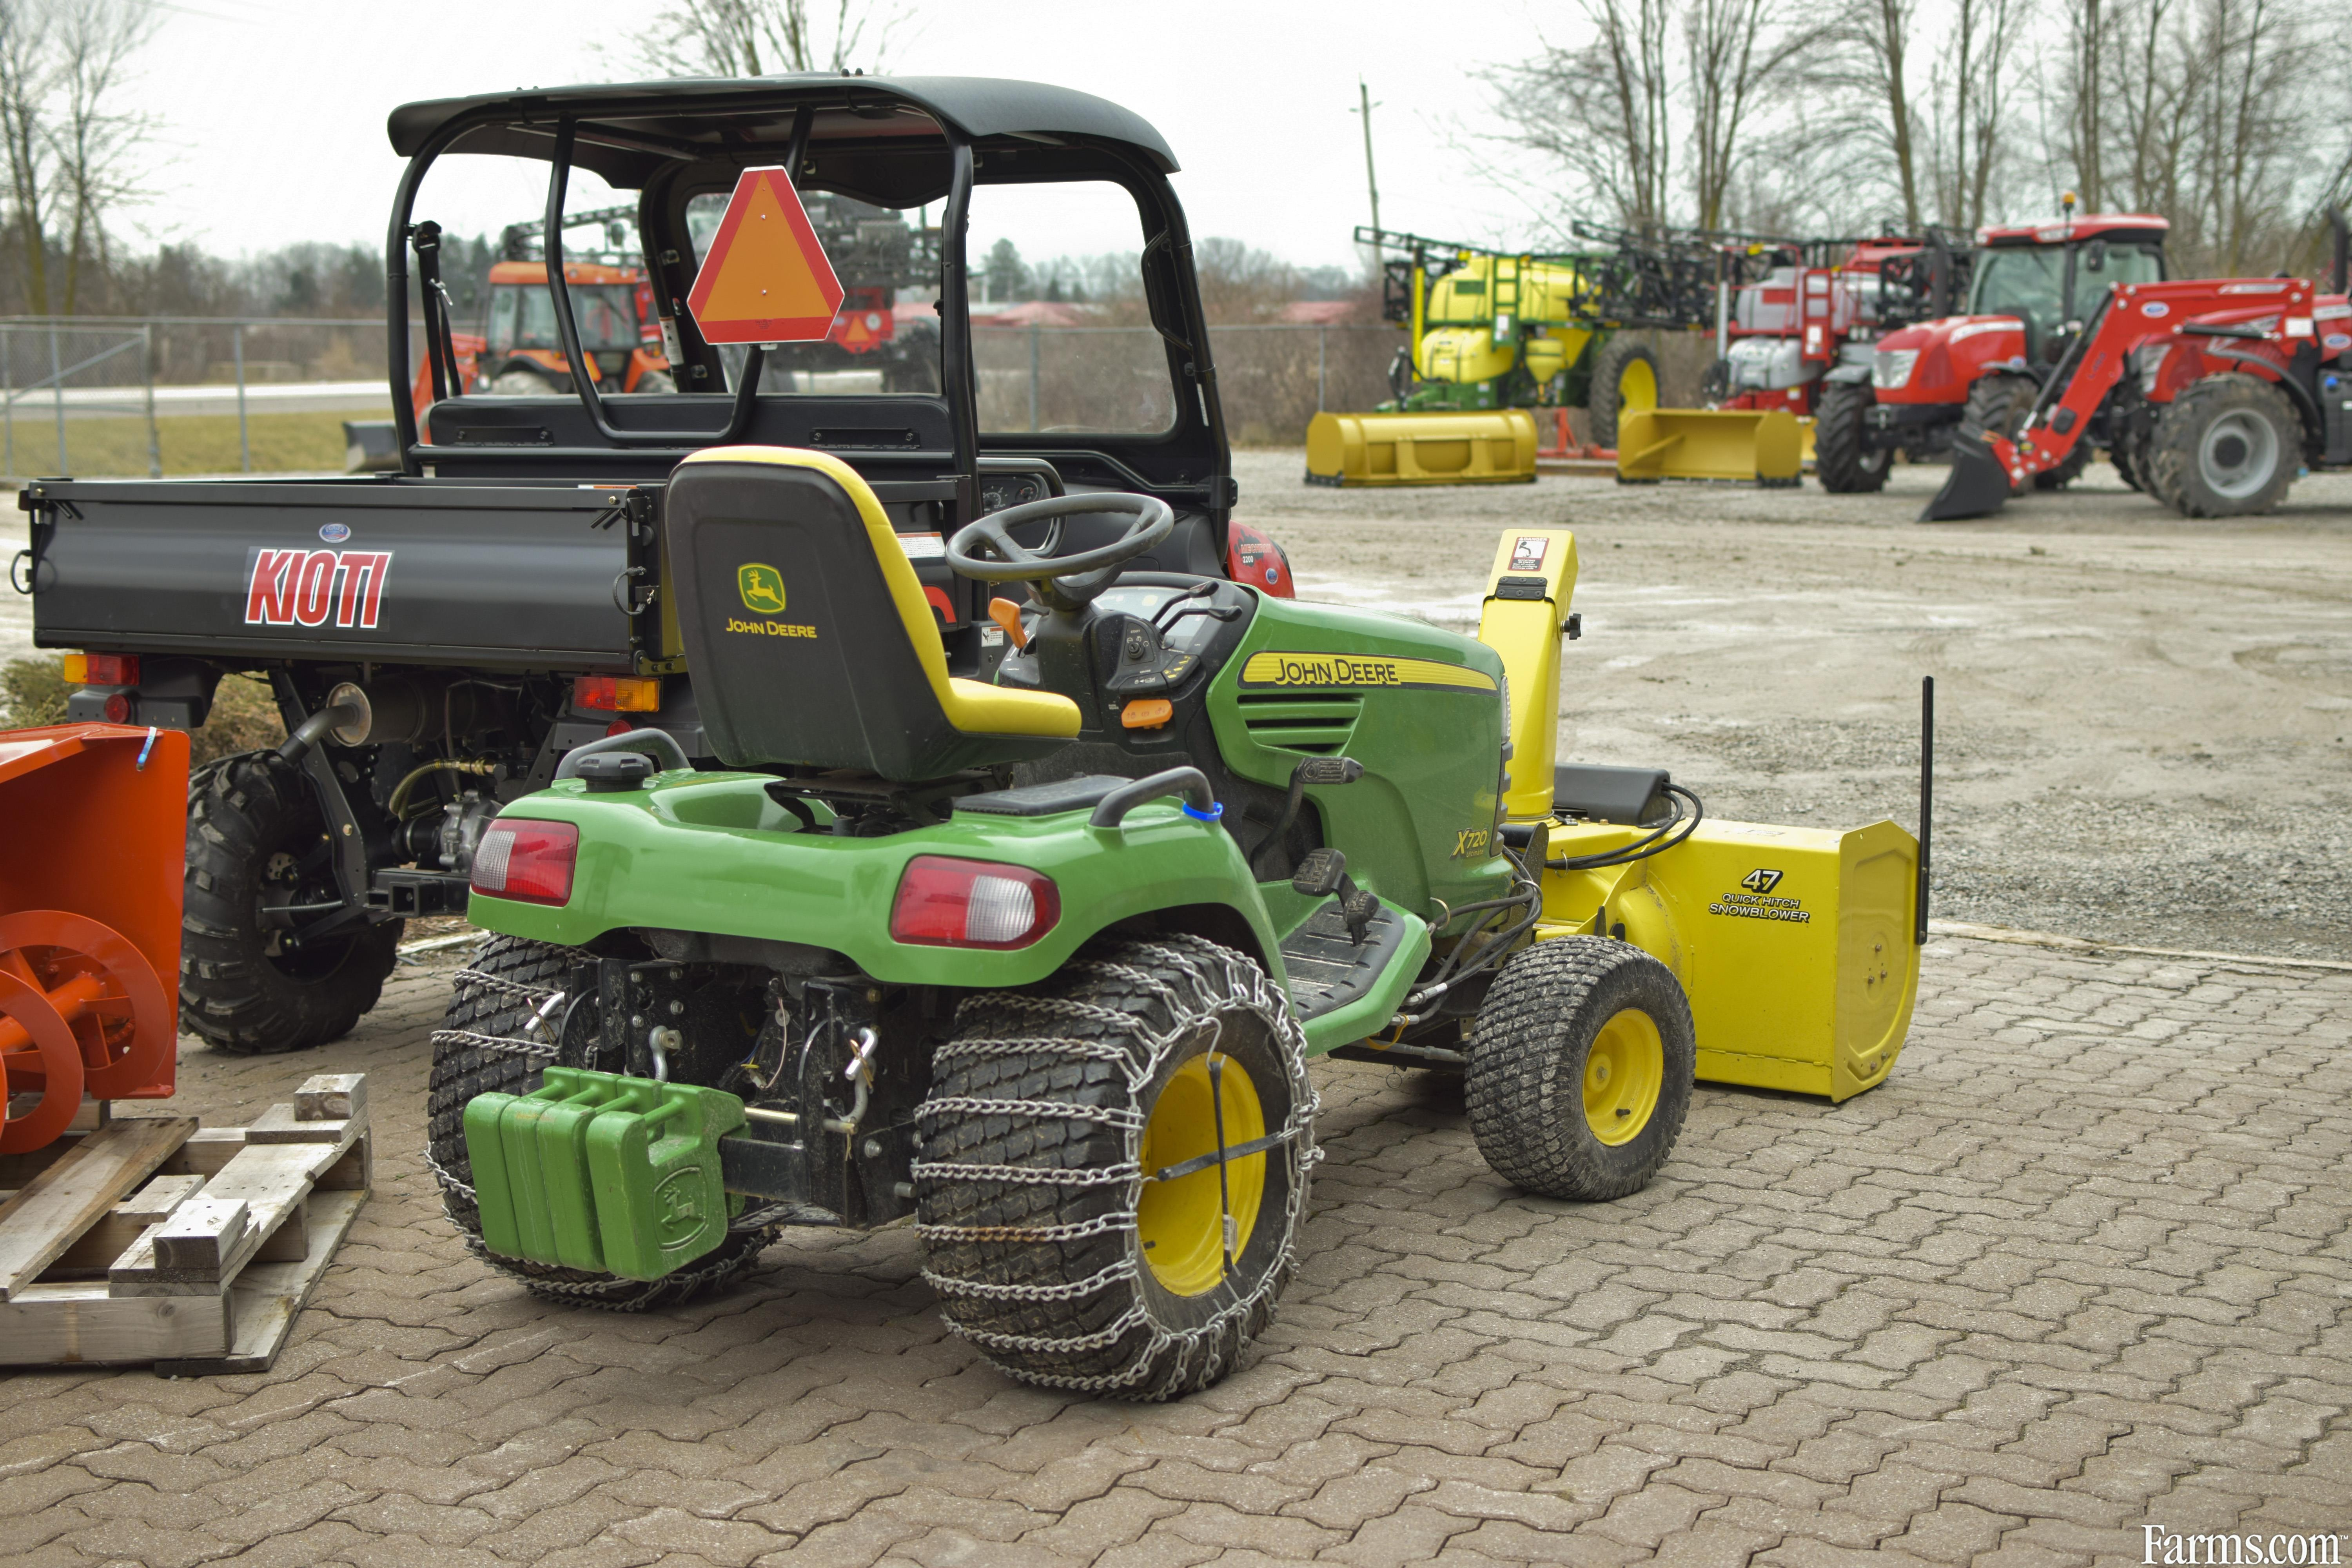 2011 john deere x720 lawn tractor with snowblower for sale for Used garden tractors for sale near me